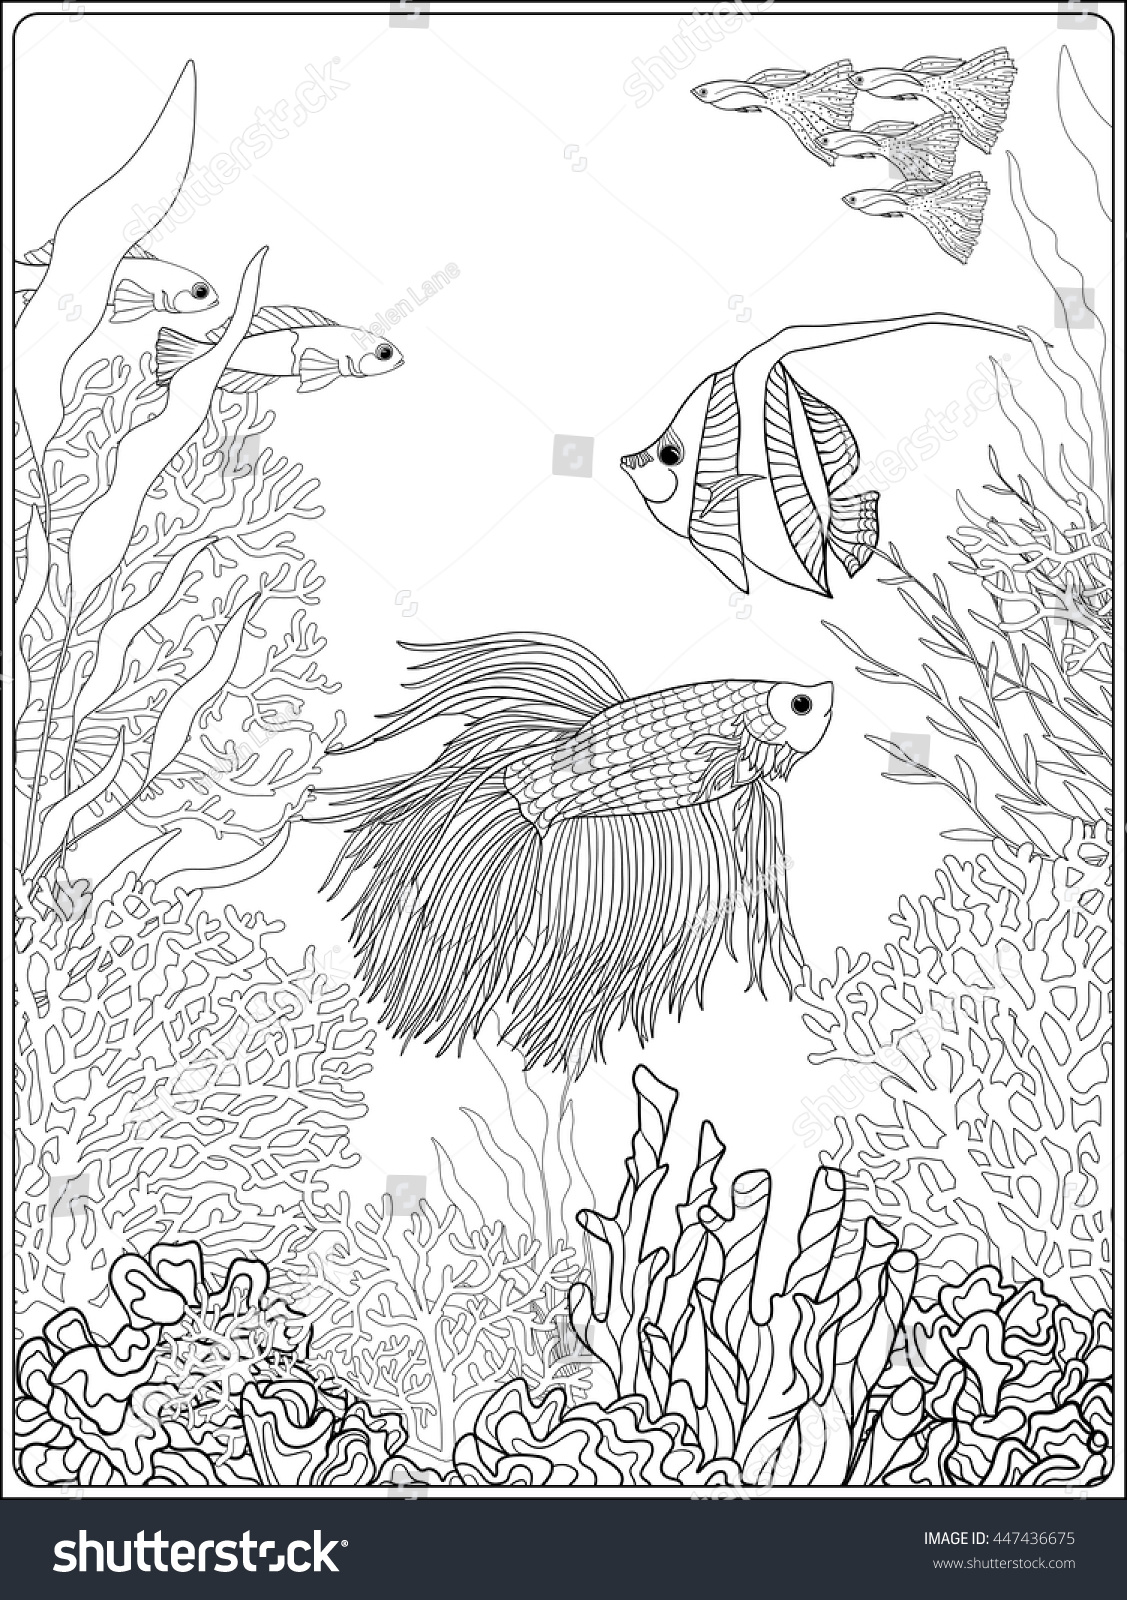 100 coloring pages underwater coloring book coloring page with